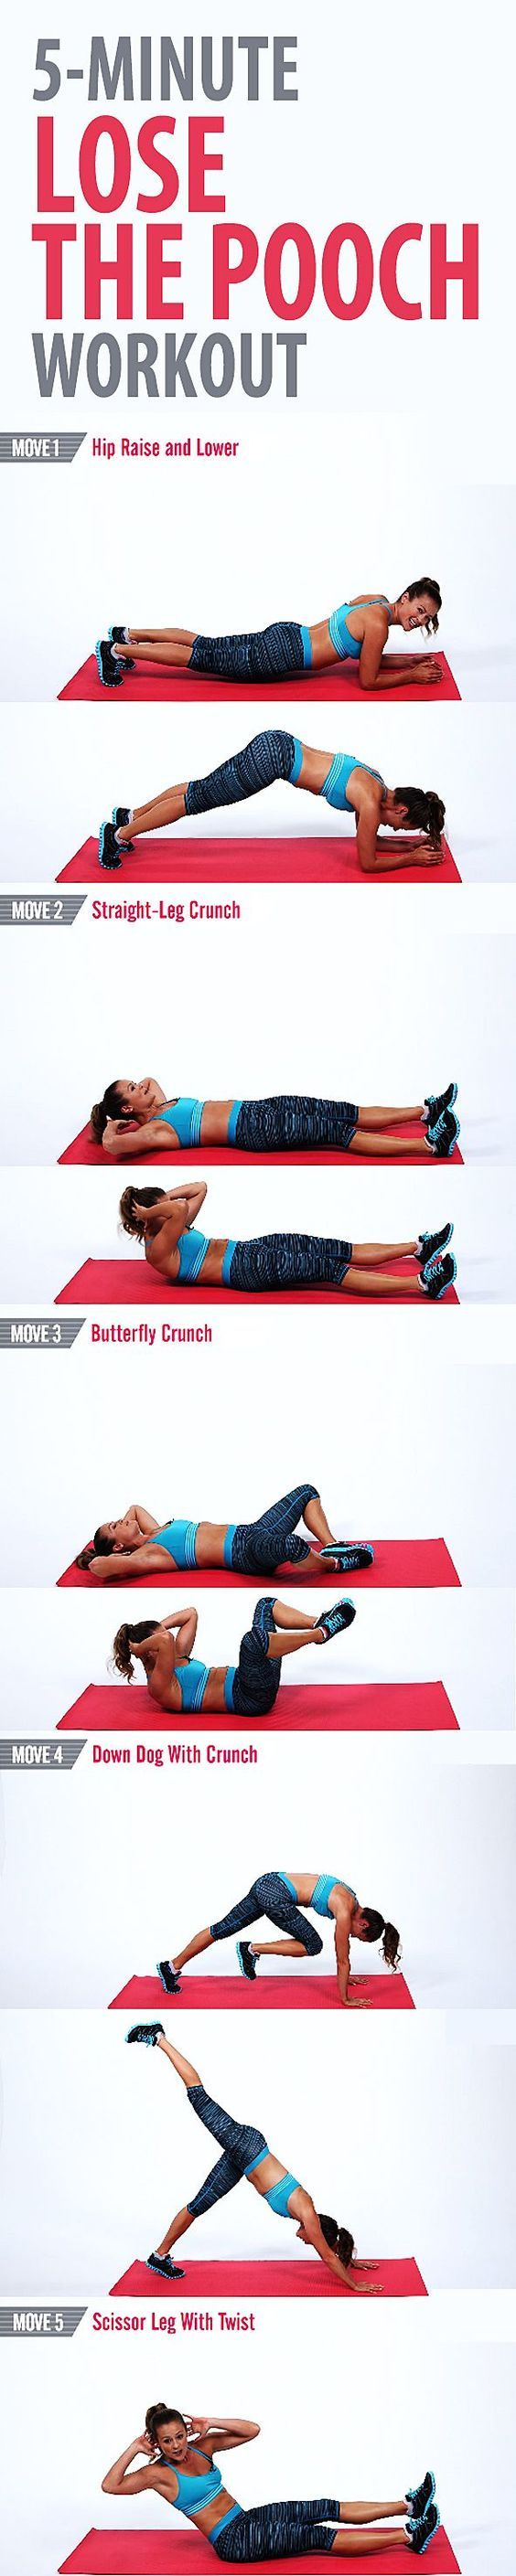 Try this quick and focused workout to tone the lower part of your abs and work off the pooch: